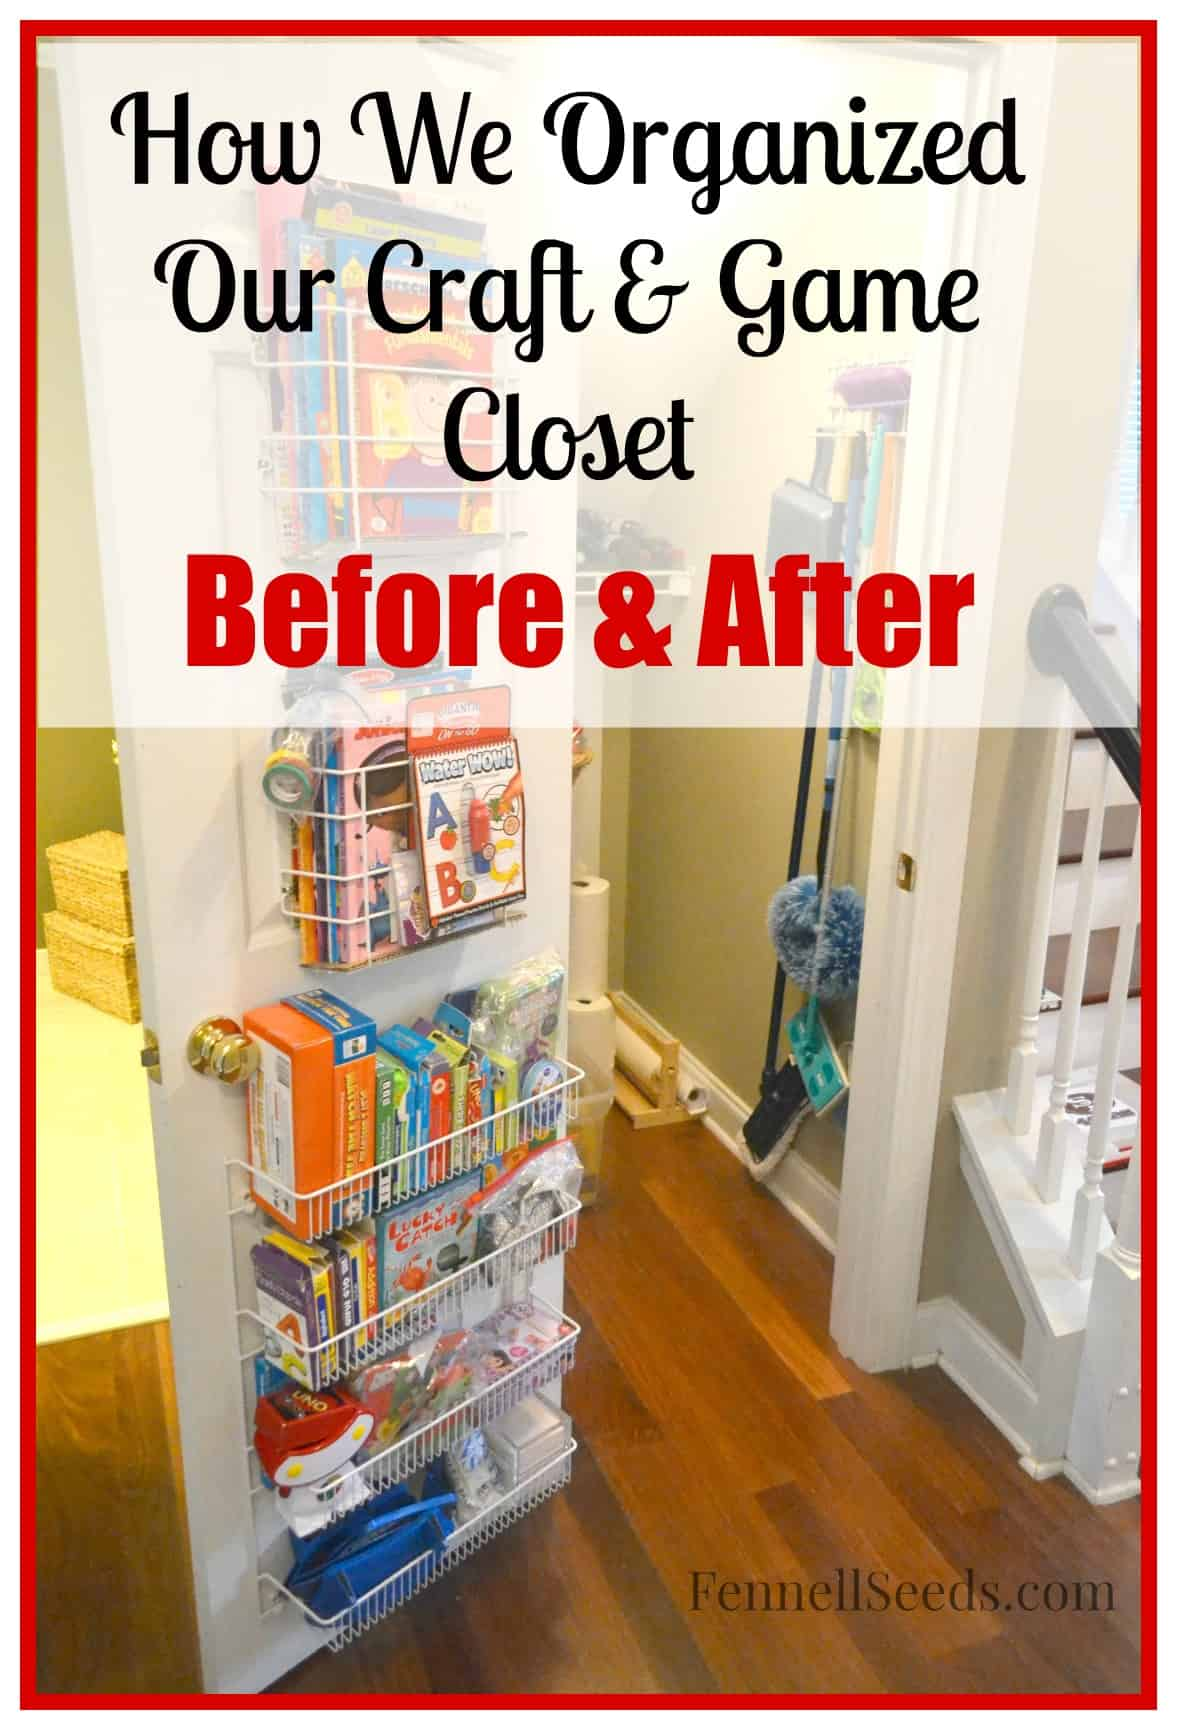 Craft Closet Organized   Before And After Photos   Fennell Seeds